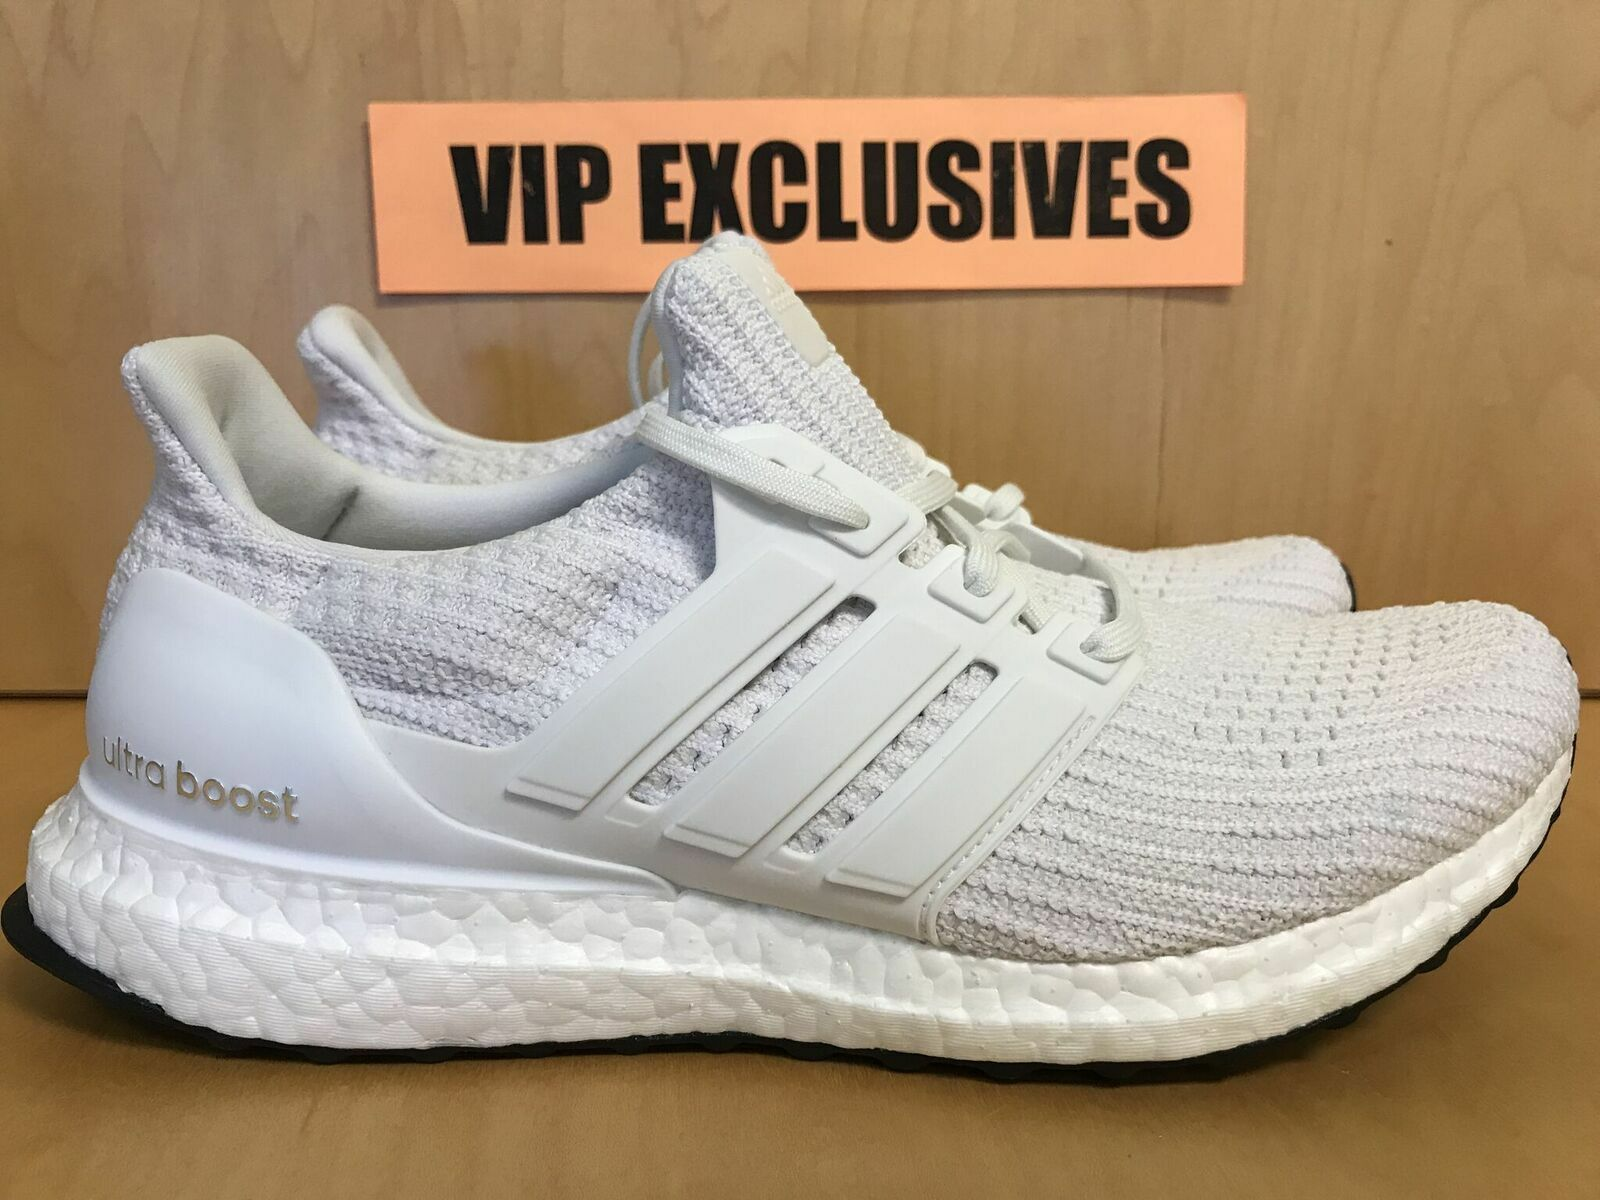 Ultra Boost Medium Width Zapatos (D, M) Solid Athletic Zapatos Width For Hombre 20c907